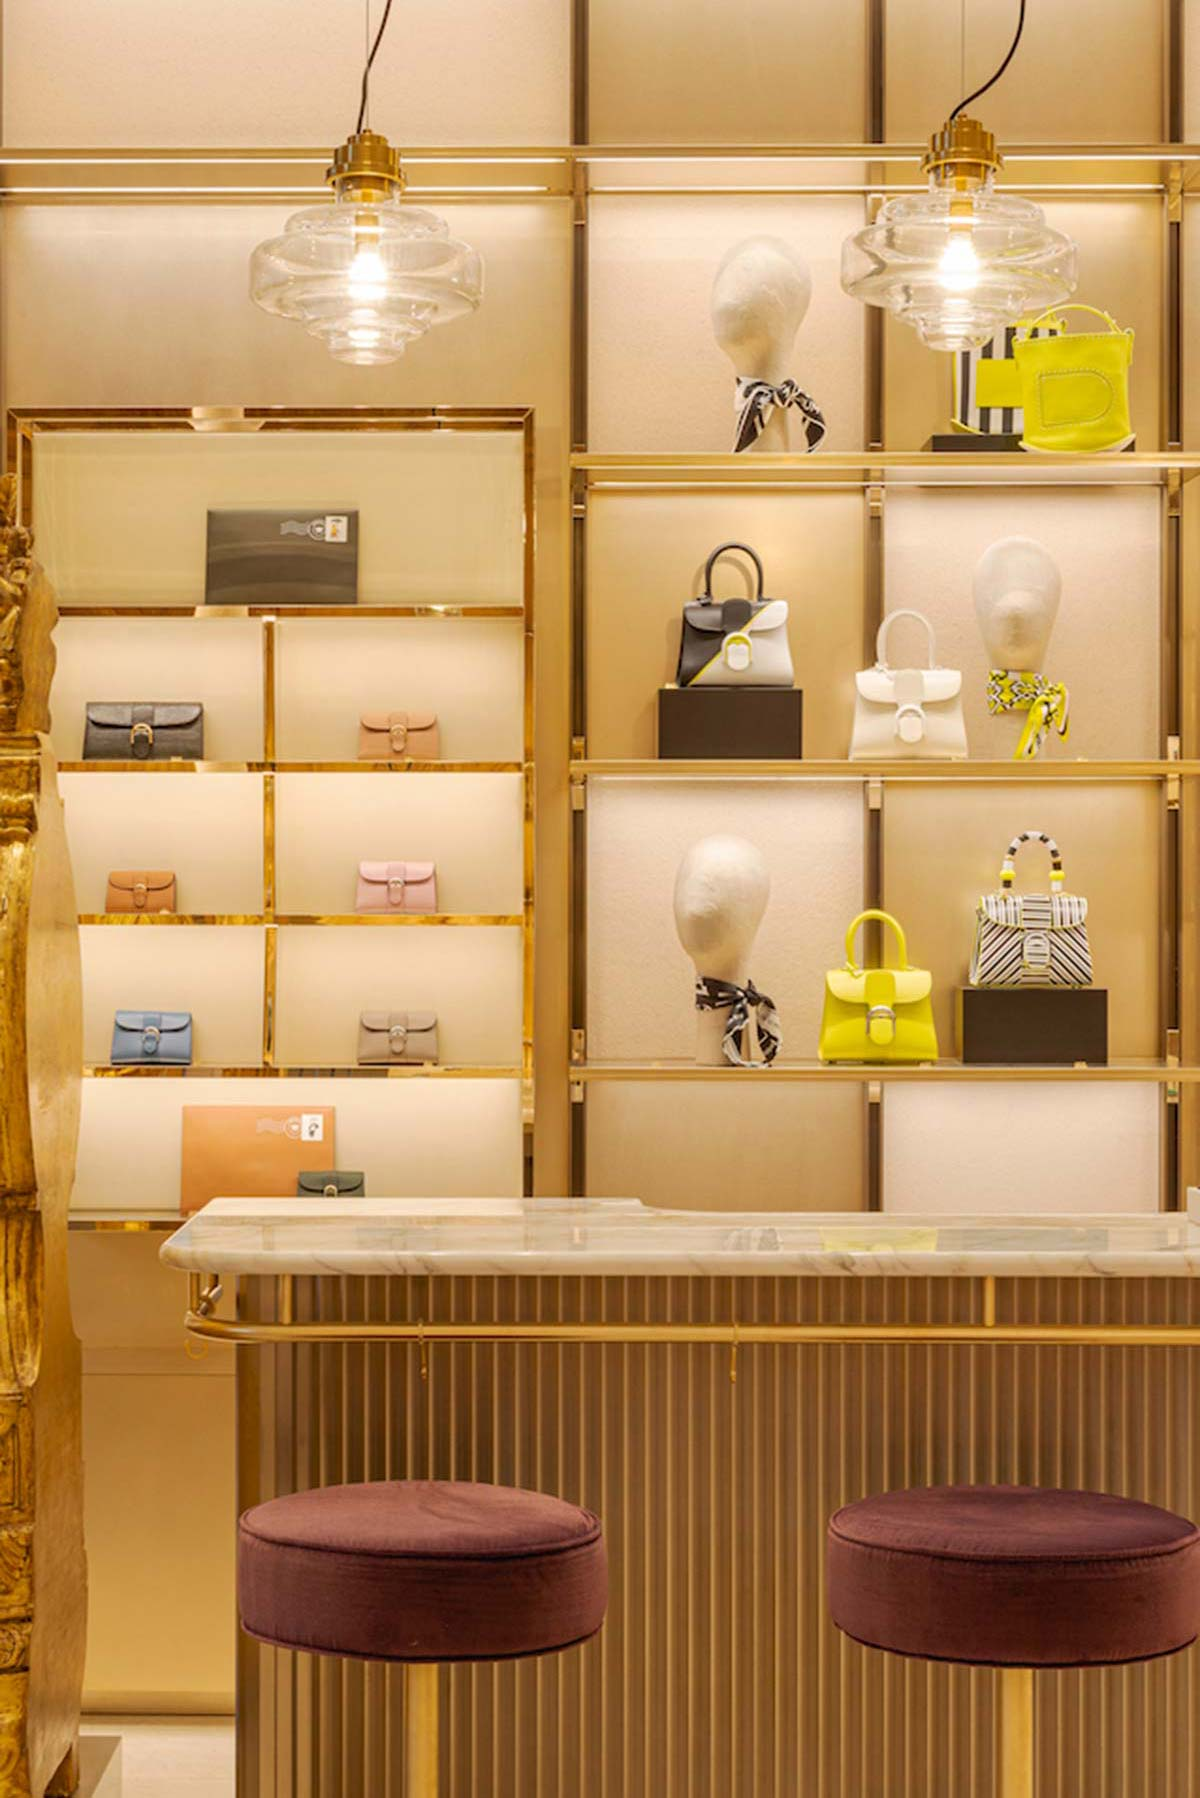 Delvaux, Paris - Photo © Antoine Huot